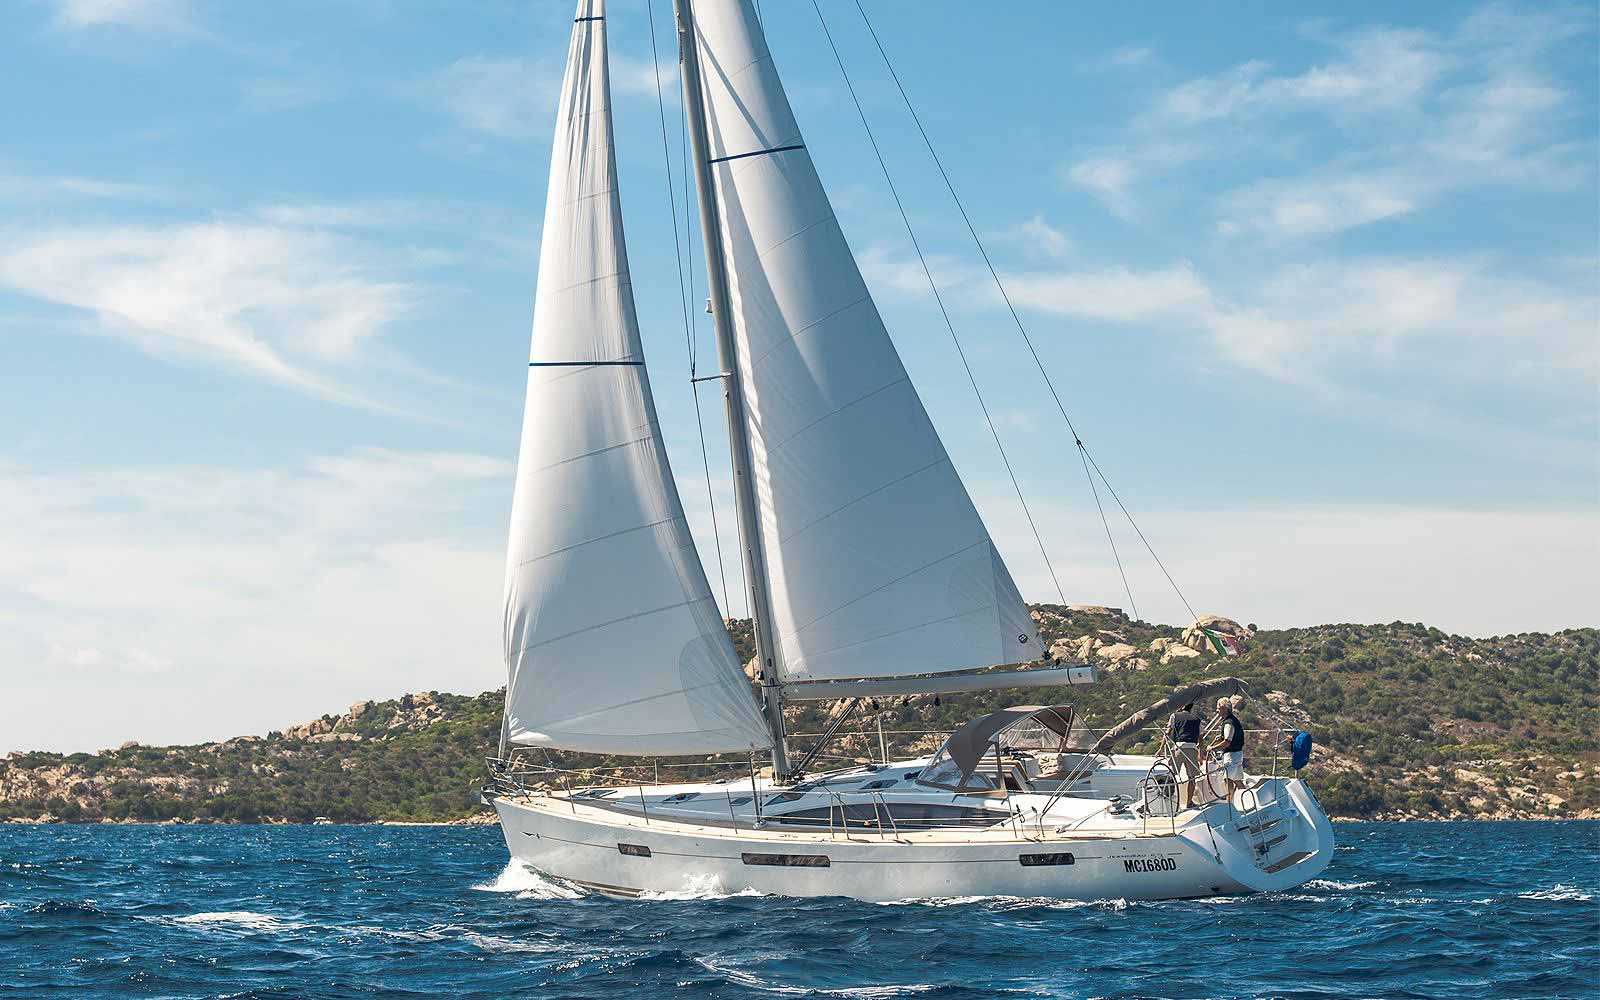 The Hotel Relais Villa Del Golfo & Spa's private sailing yacht 'BonAria'